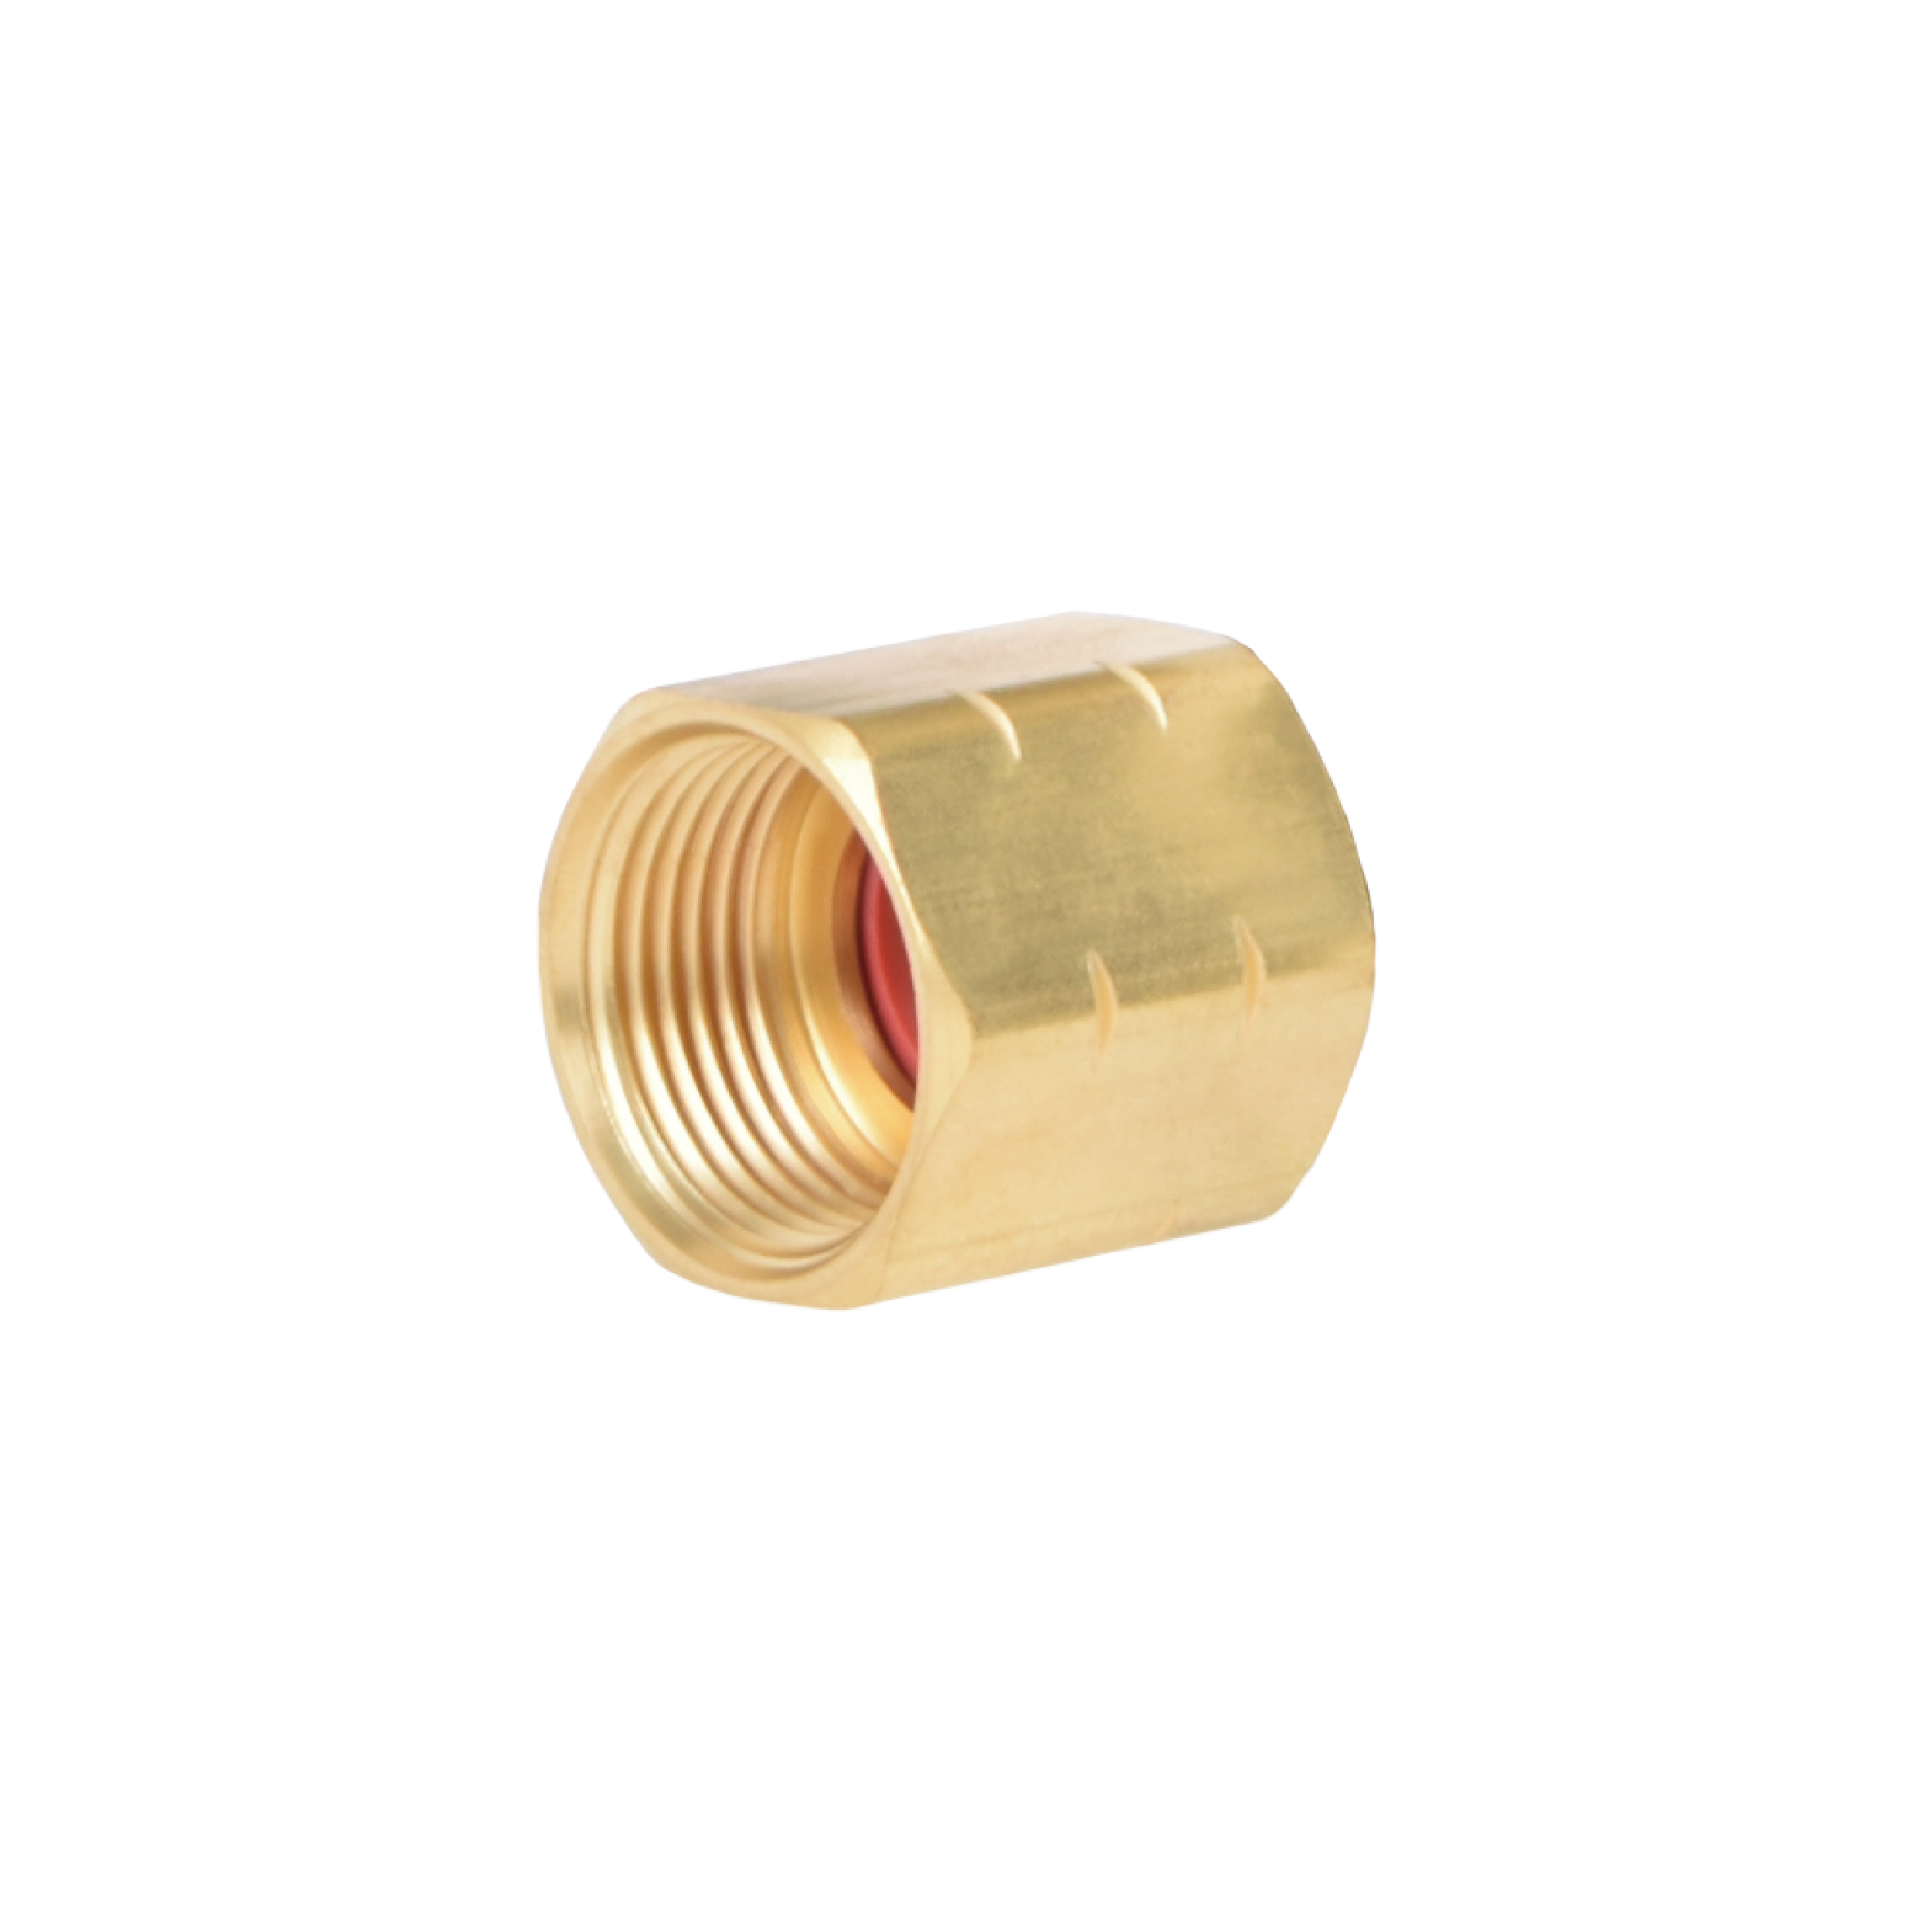 HOSE ADAPTER 3/4FH - 3/4FP